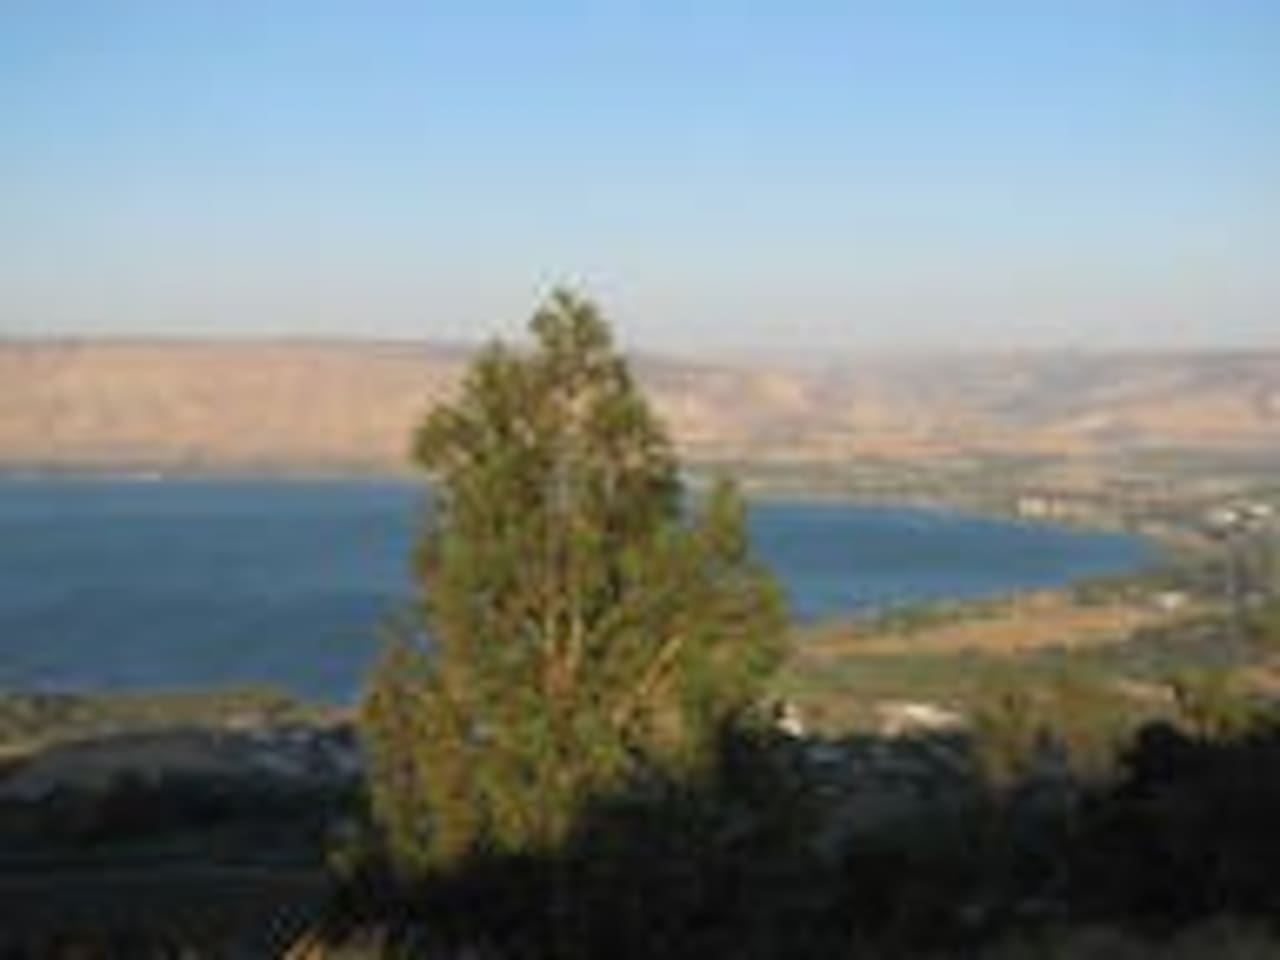 General view of The Sea of Galilee and River Jordan-close to the Villa